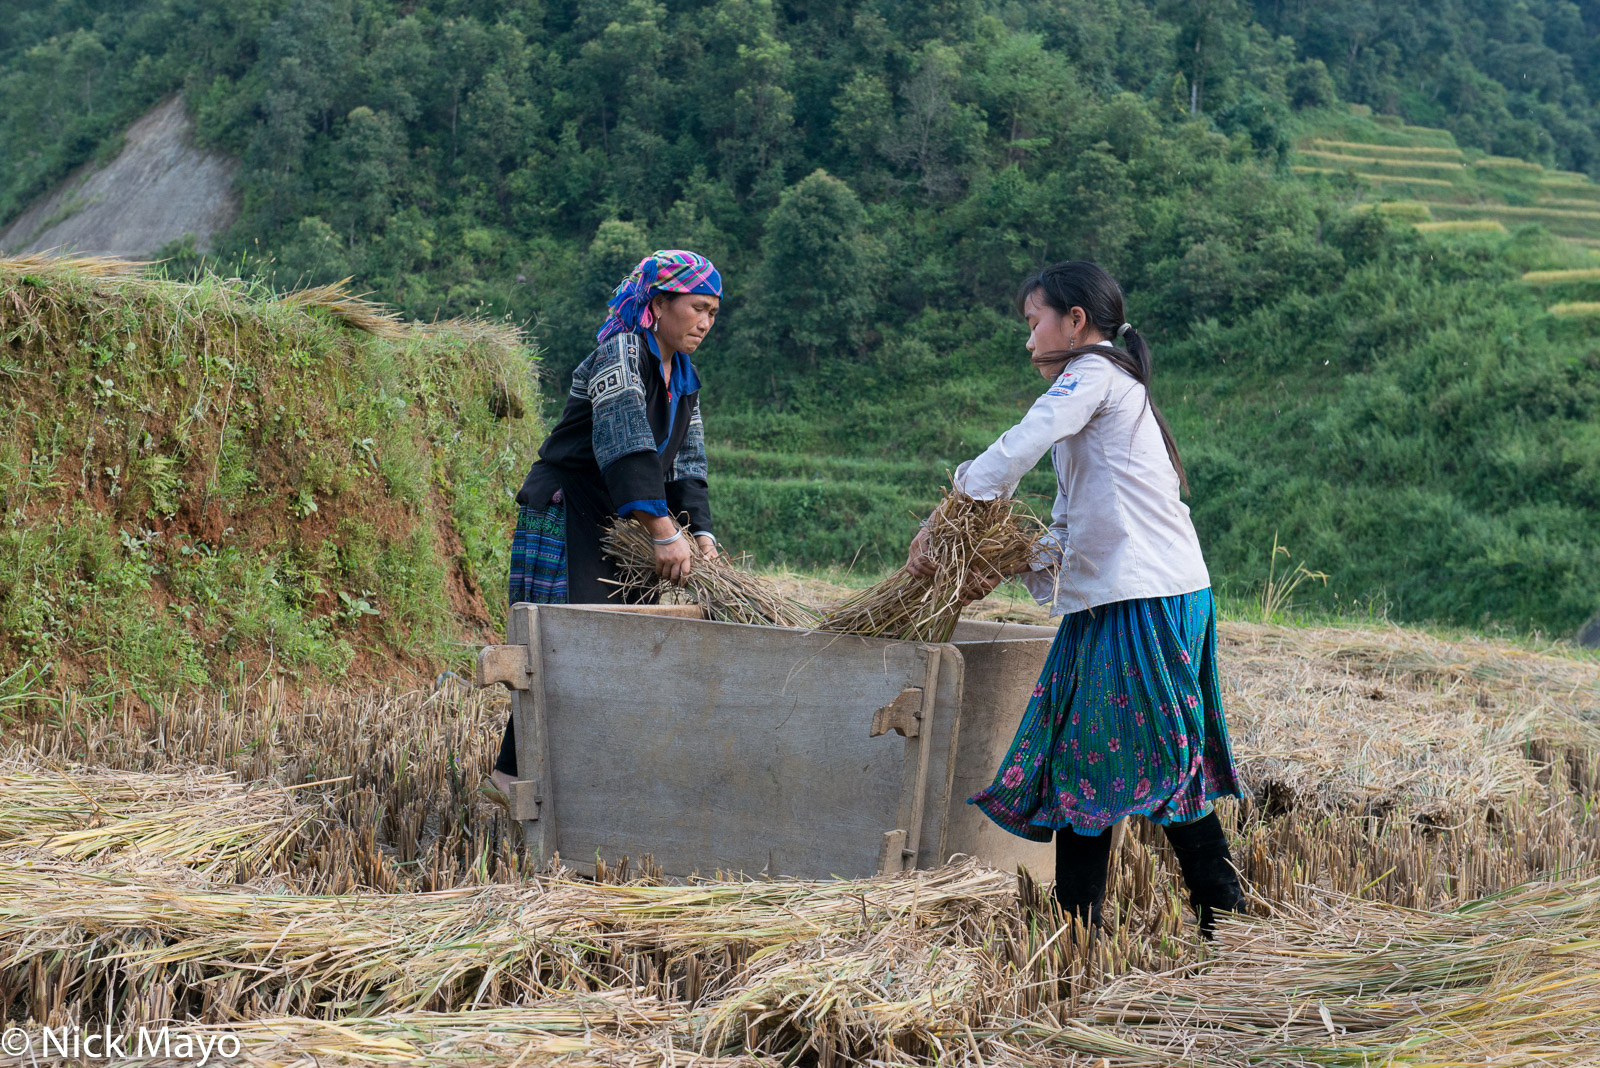 Head Scarf,Miao,Paddy,Threshing,Vietnam,Yen Bai, photo